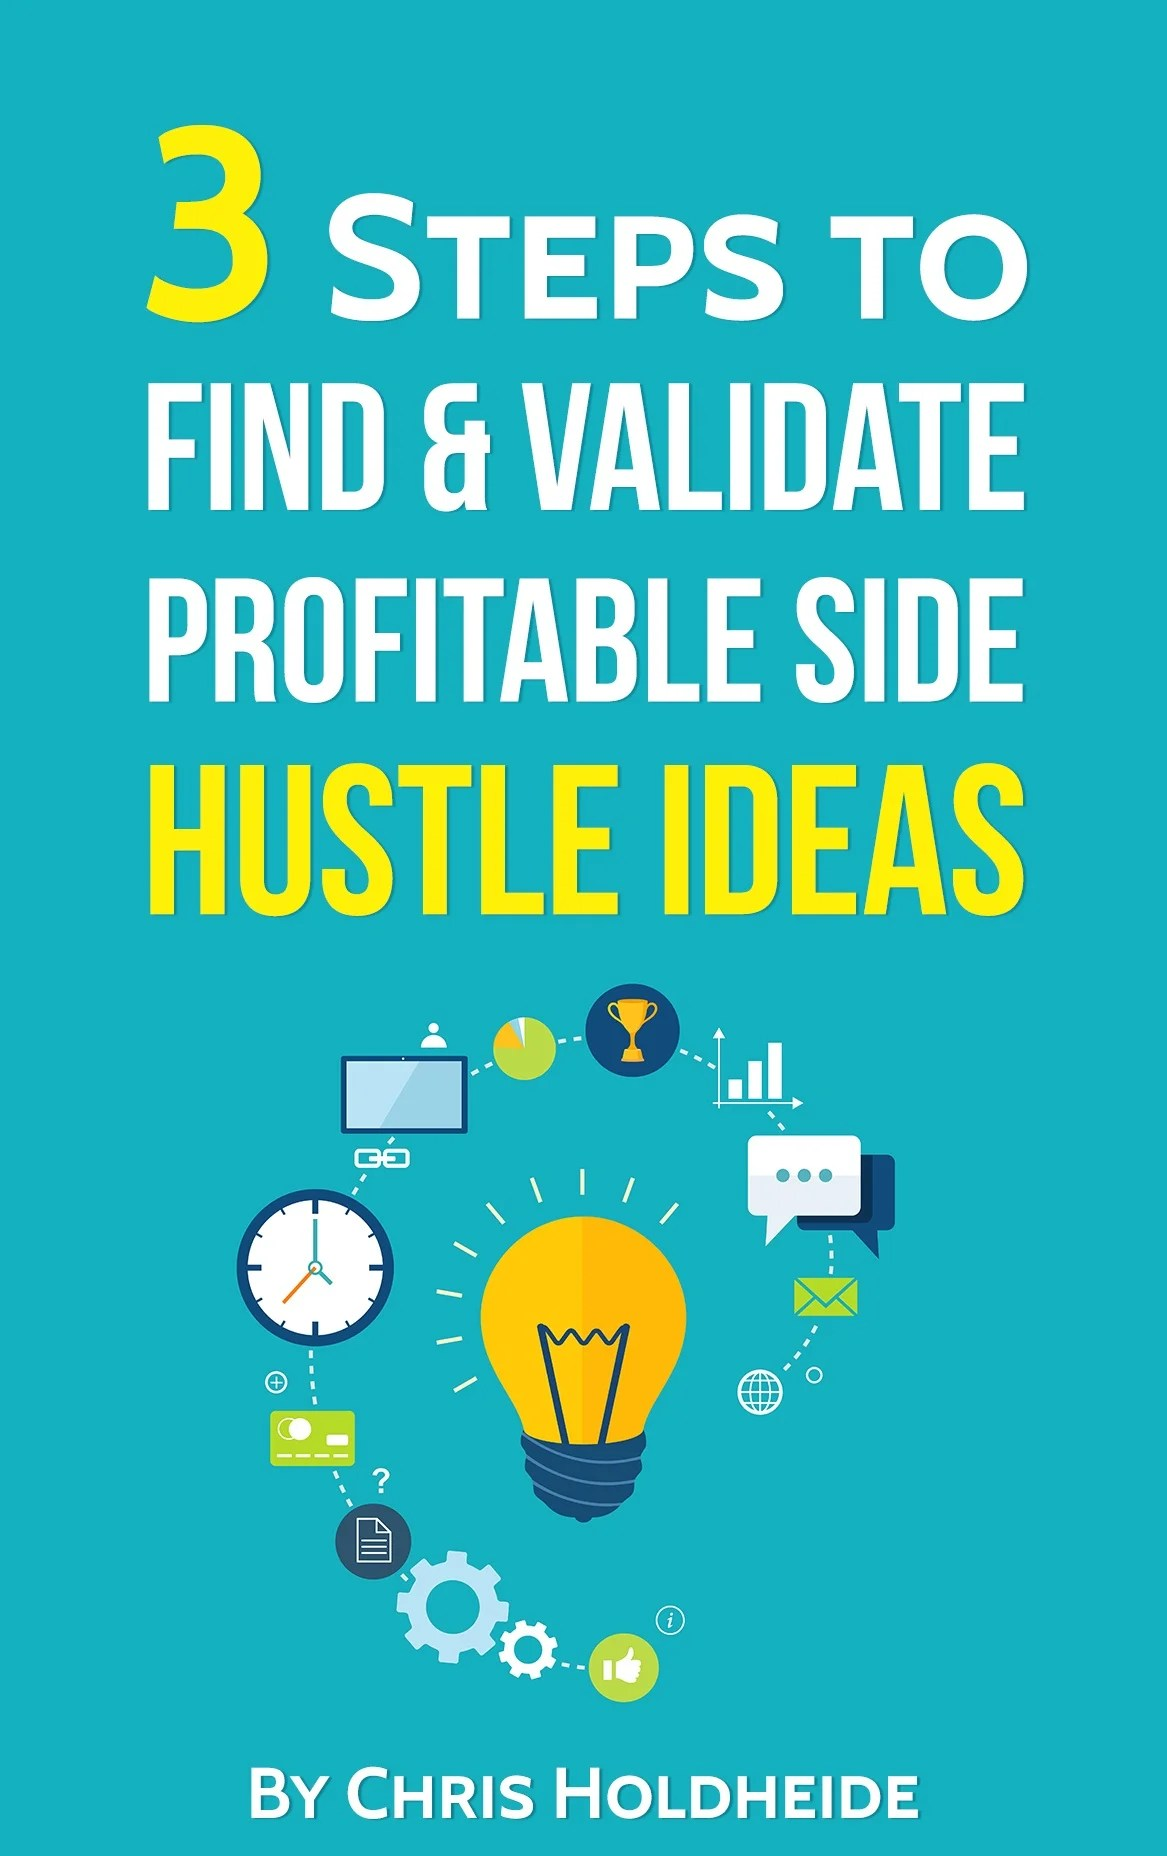 3 Steps to Find & Validate Profitable Side Hustle Ideas